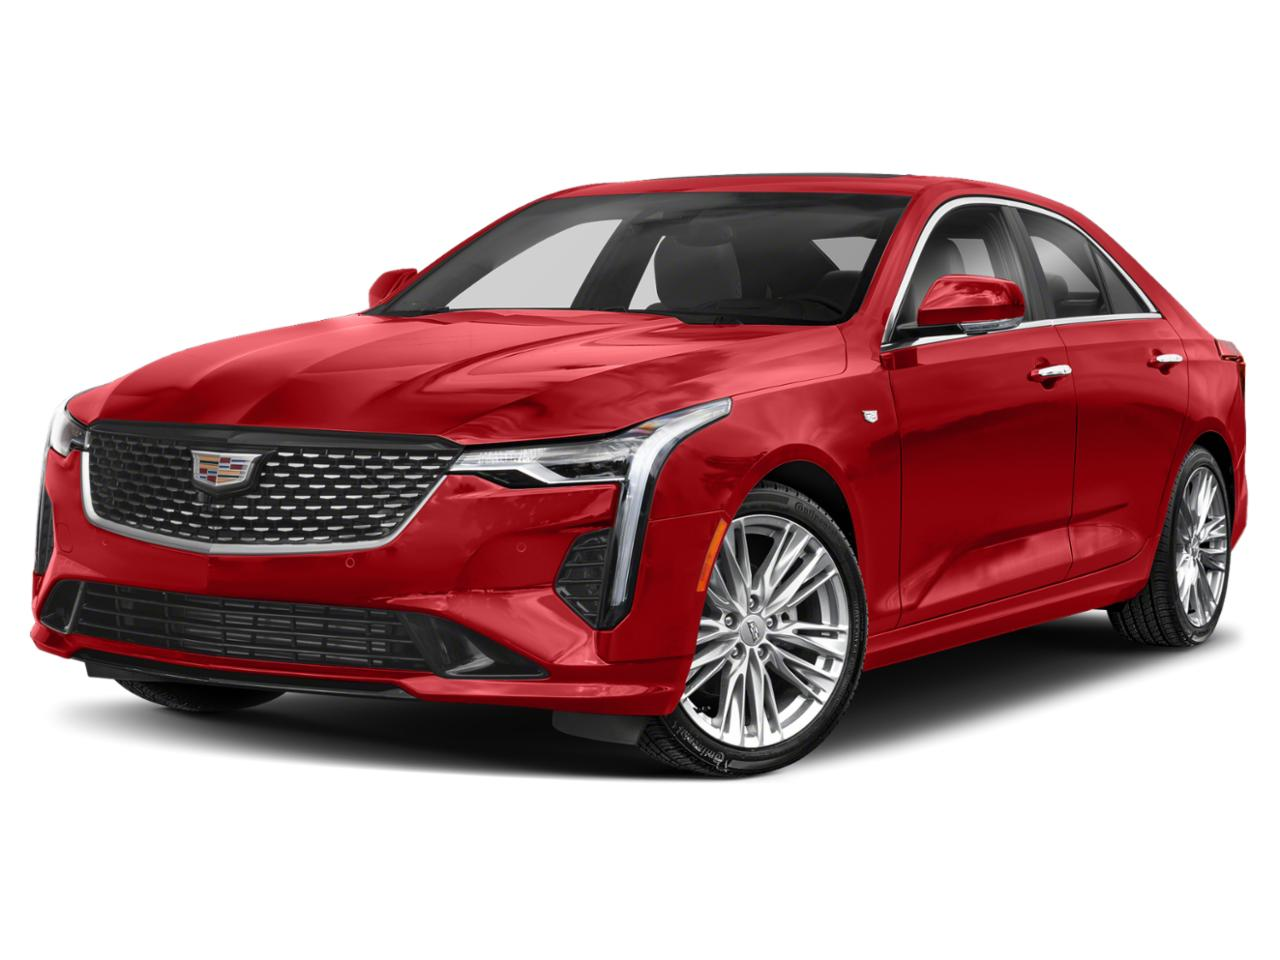 2021 Cadillac CT4 Vehicle Photo in GRAPEVINE, TX 76051-8302